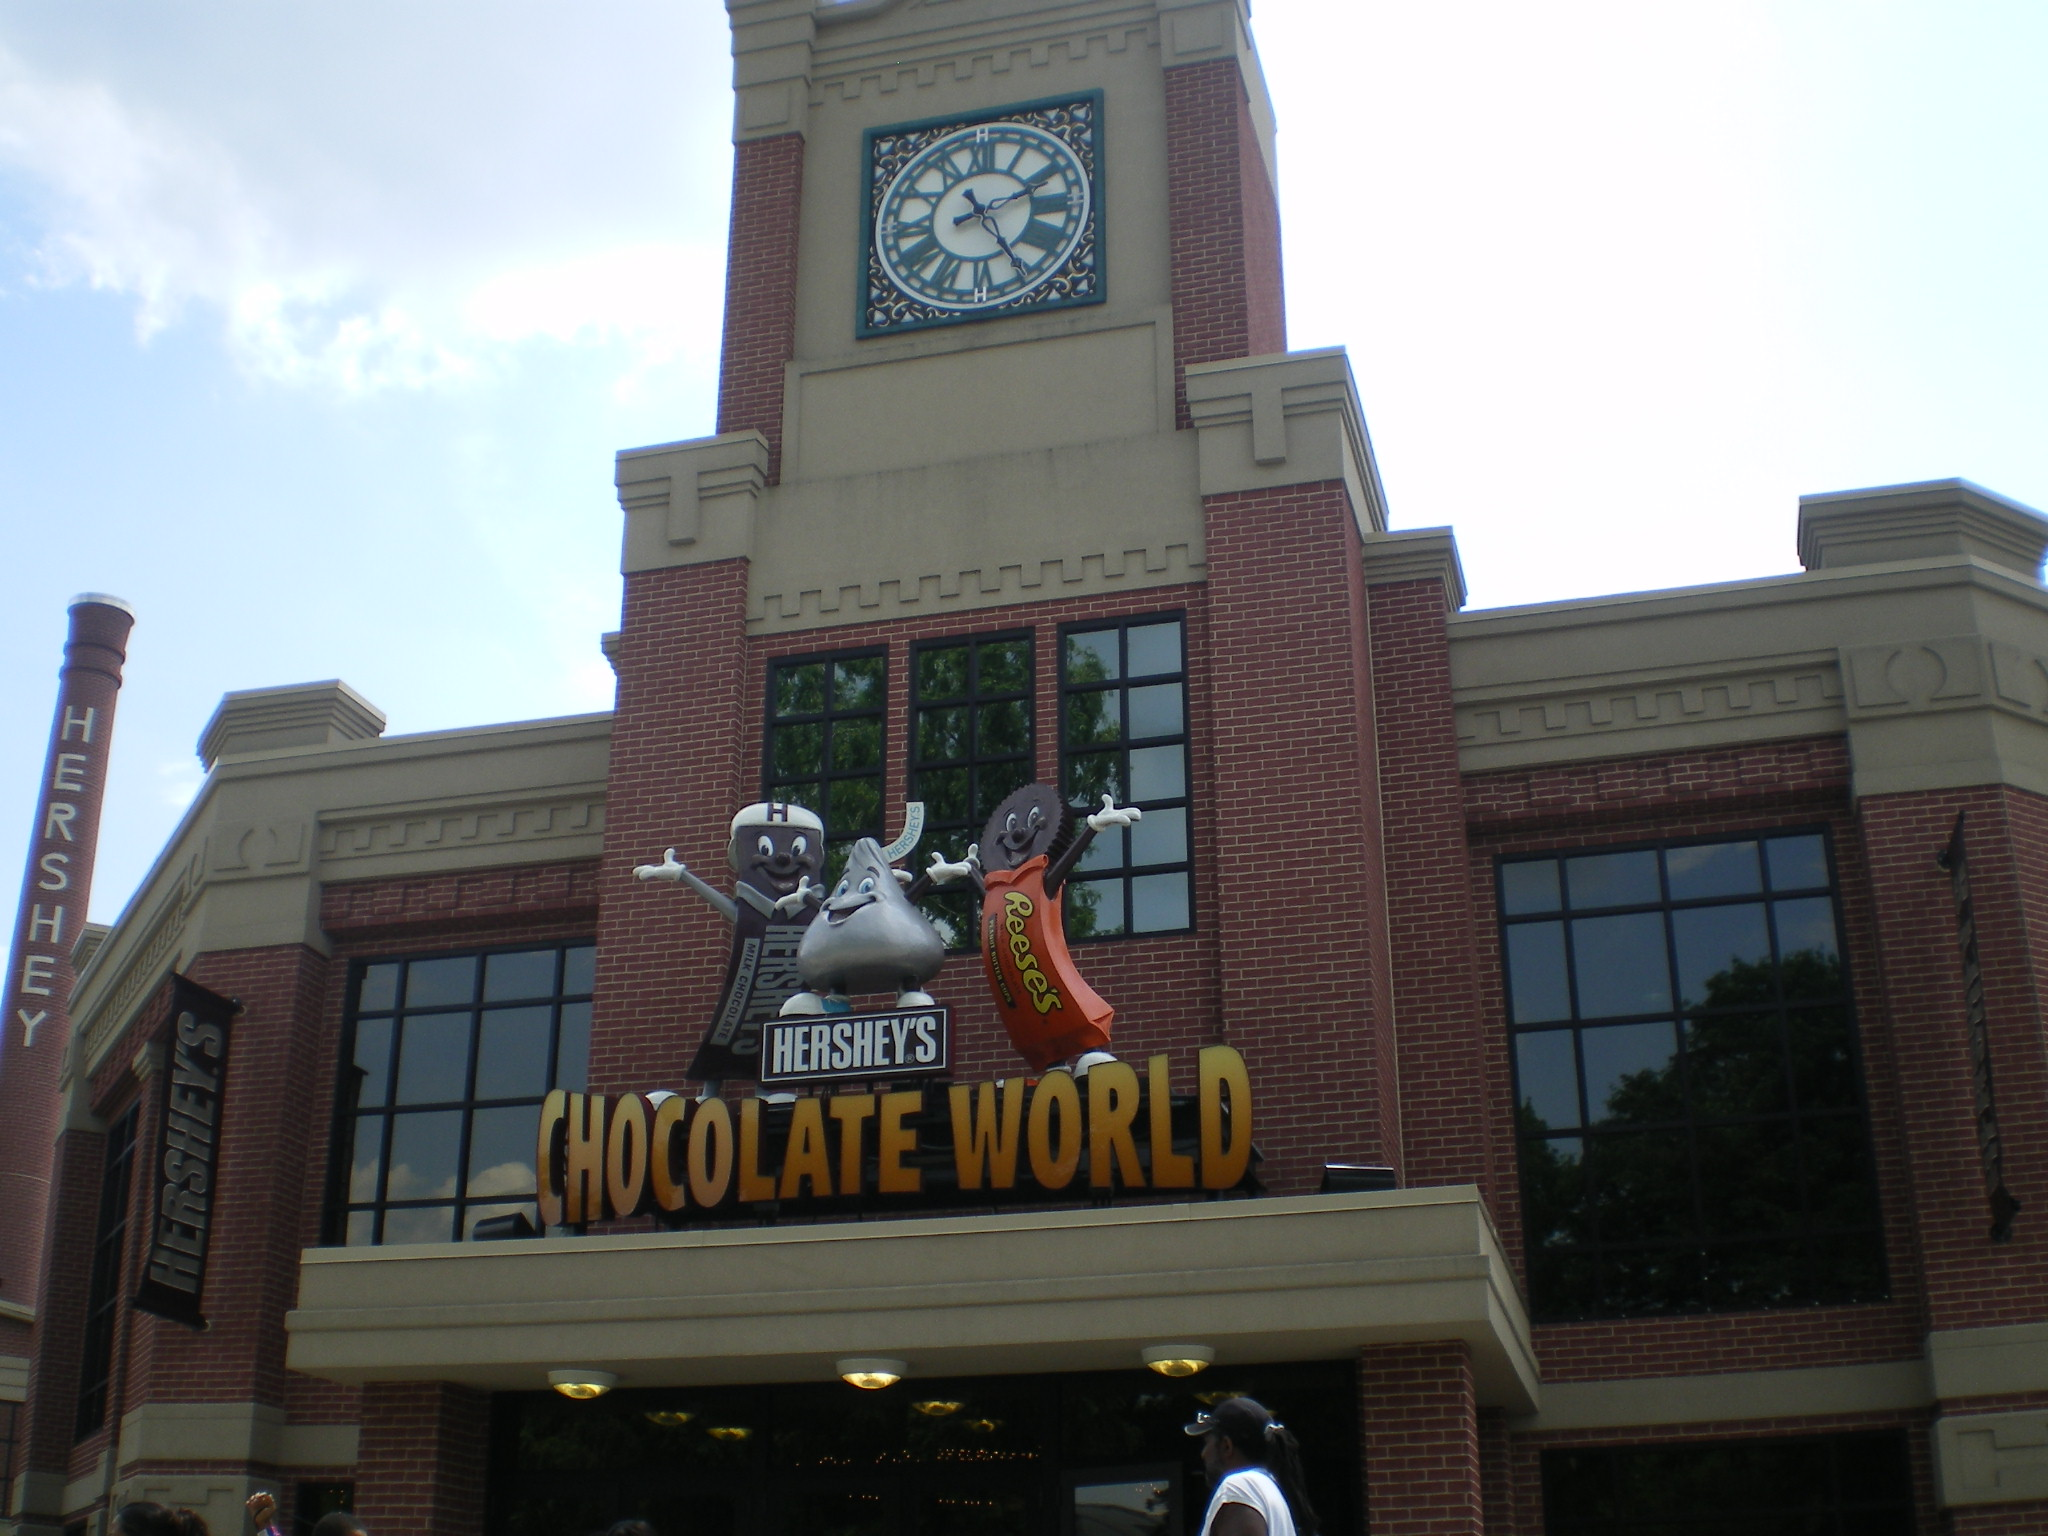 TAM goes to chocolate world!